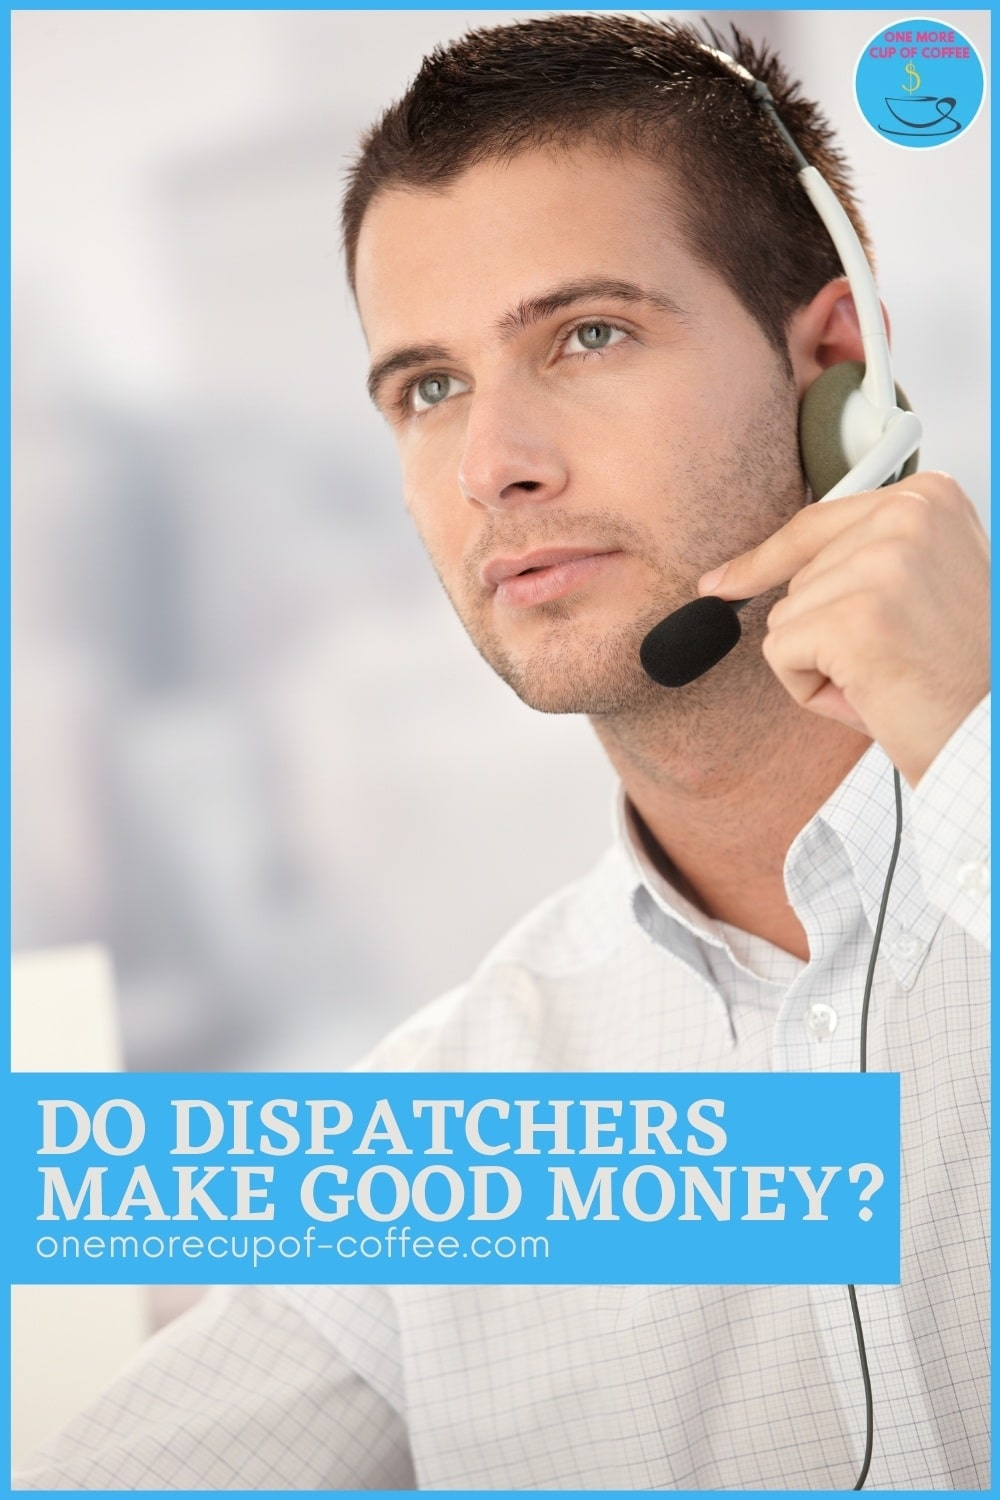 closeup image of a male dispatcher. with overlay text in a blue banner